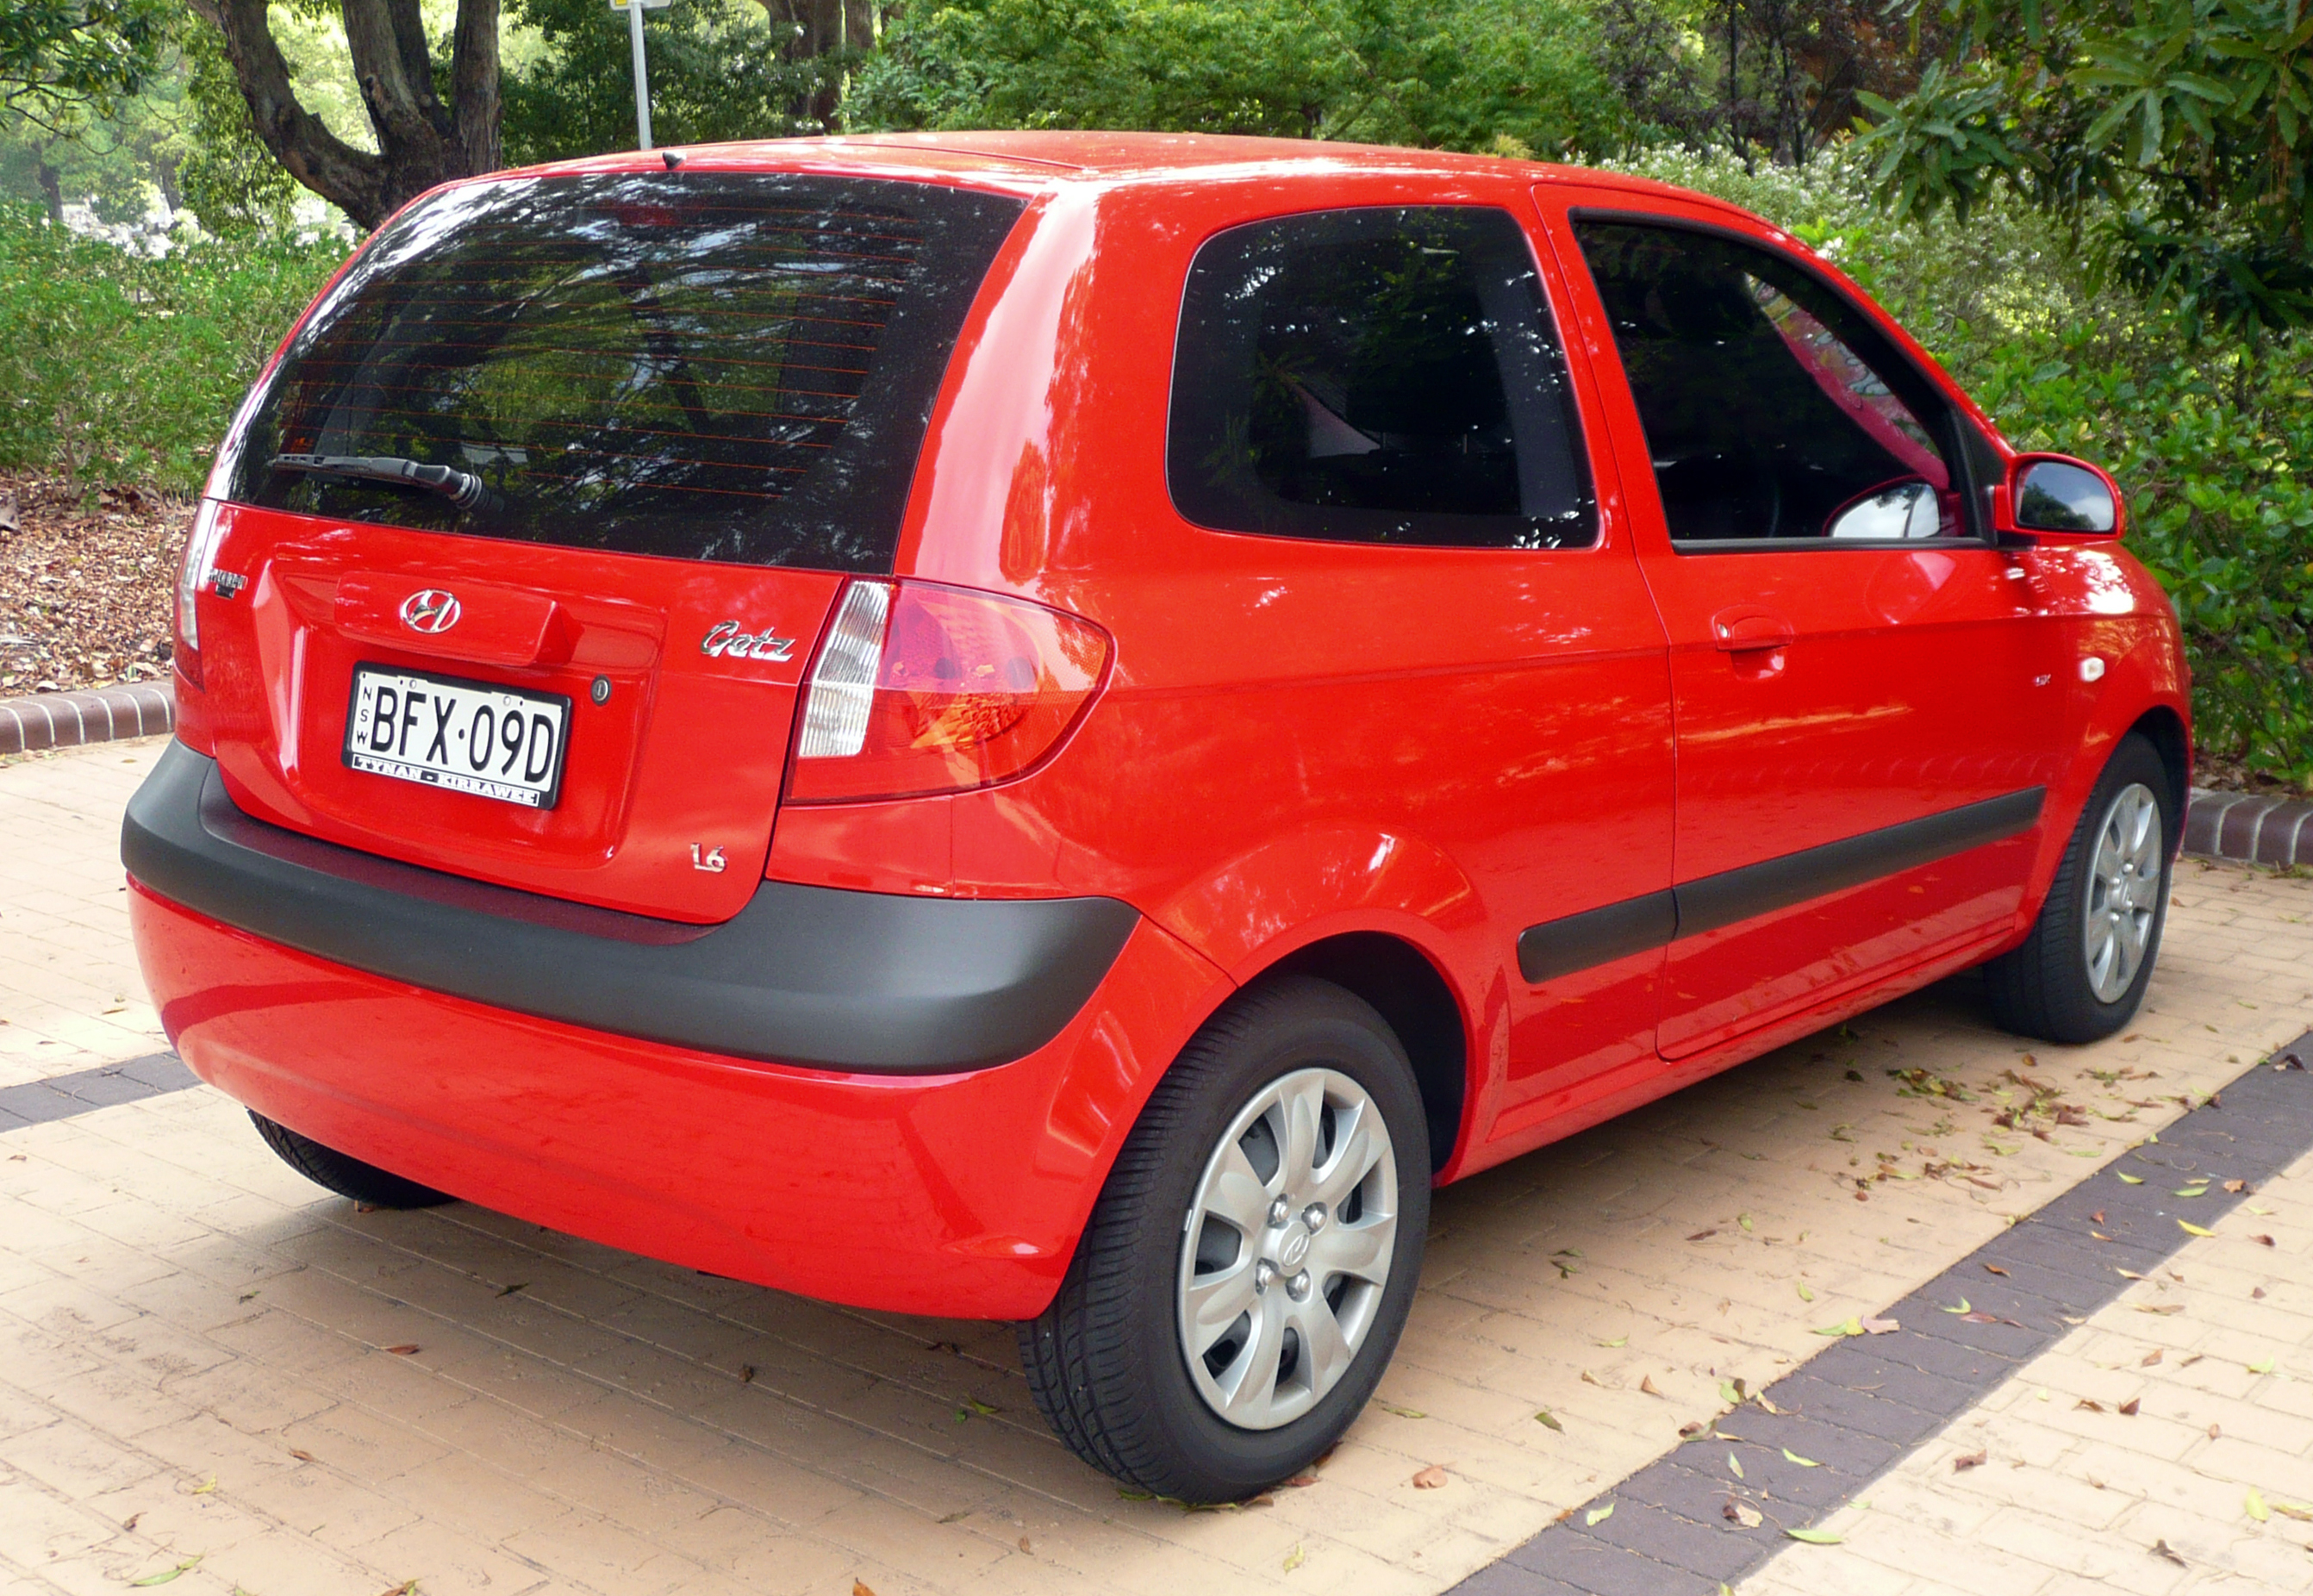 file 2008 hyundai getz tb my09 sx 3 door hatchback 2009. Black Bedroom Furniture Sets. Home Design Ideas